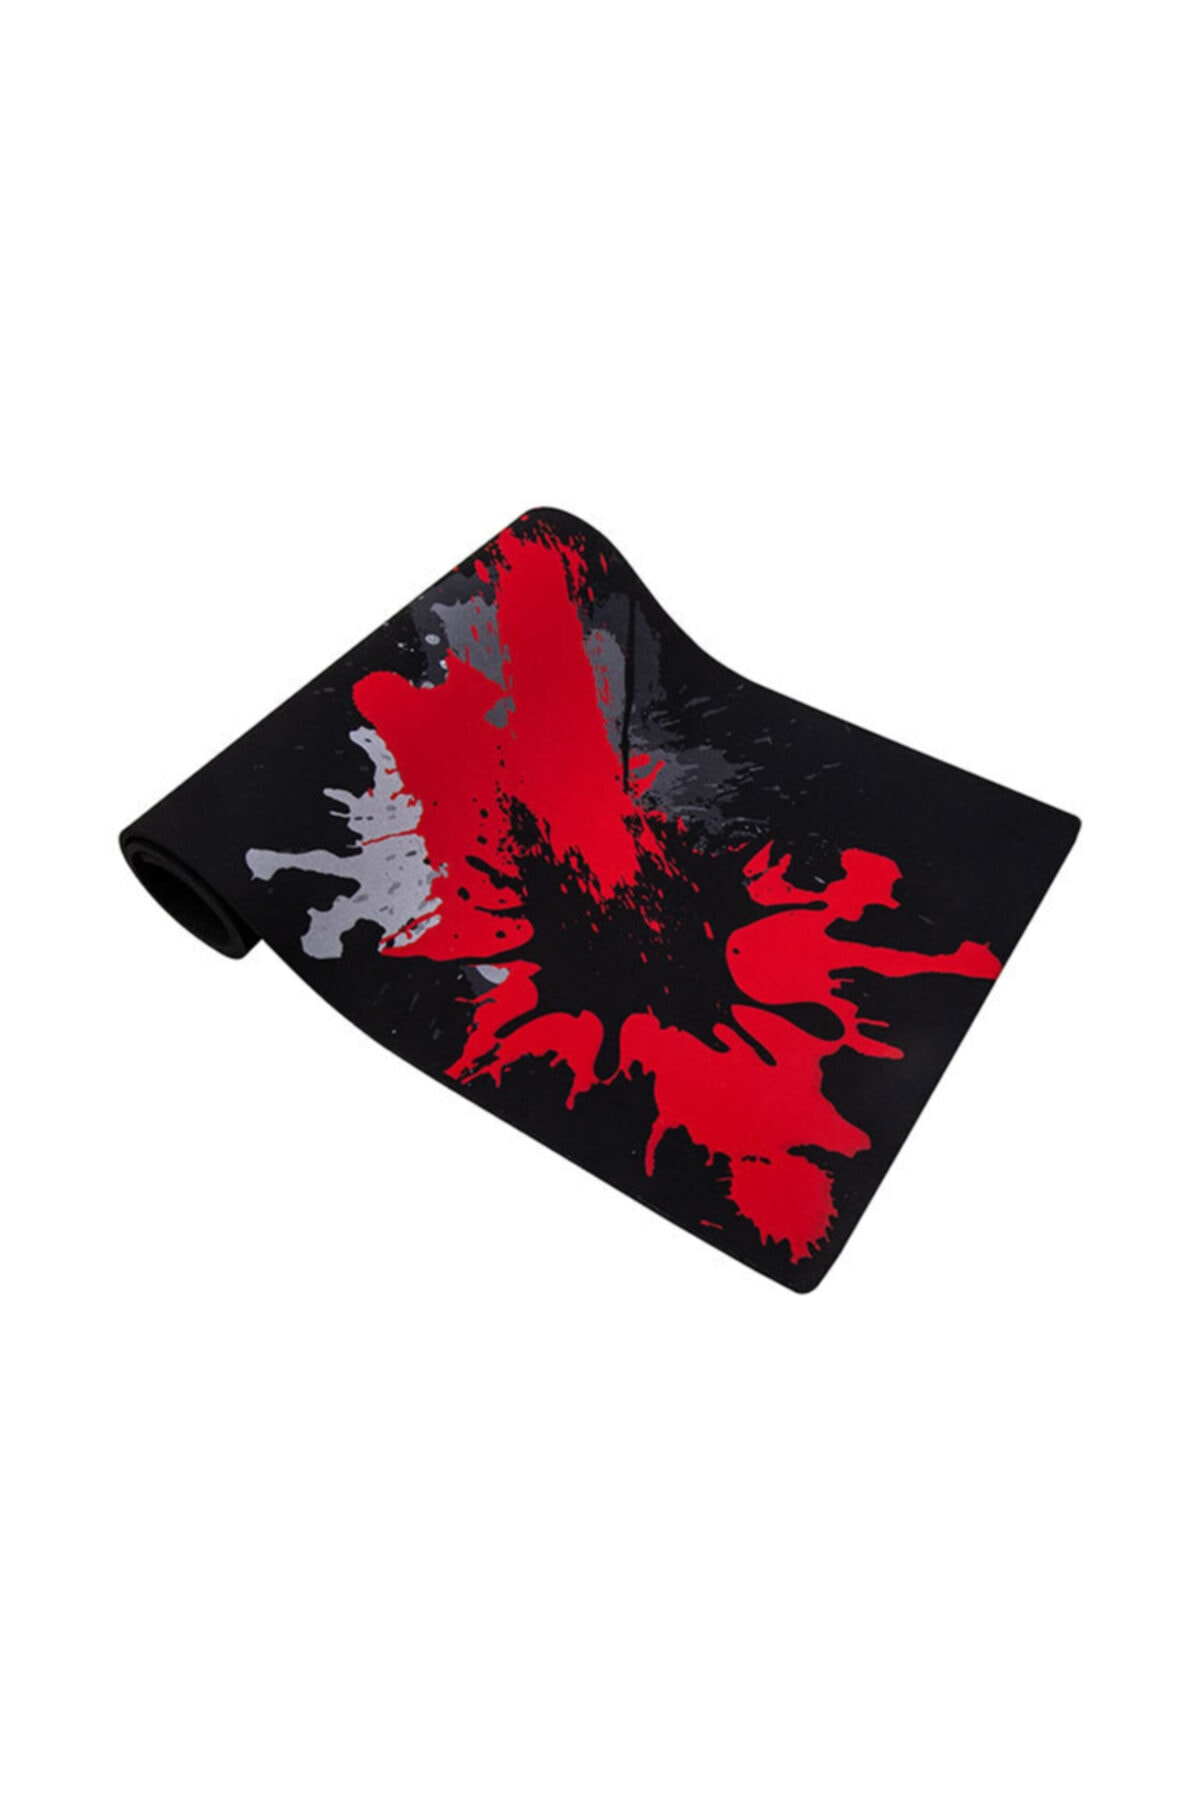 Rampage Addison Azr Combat Zone Xl 800*300*4 Mm Gaming Mouse Pad 2